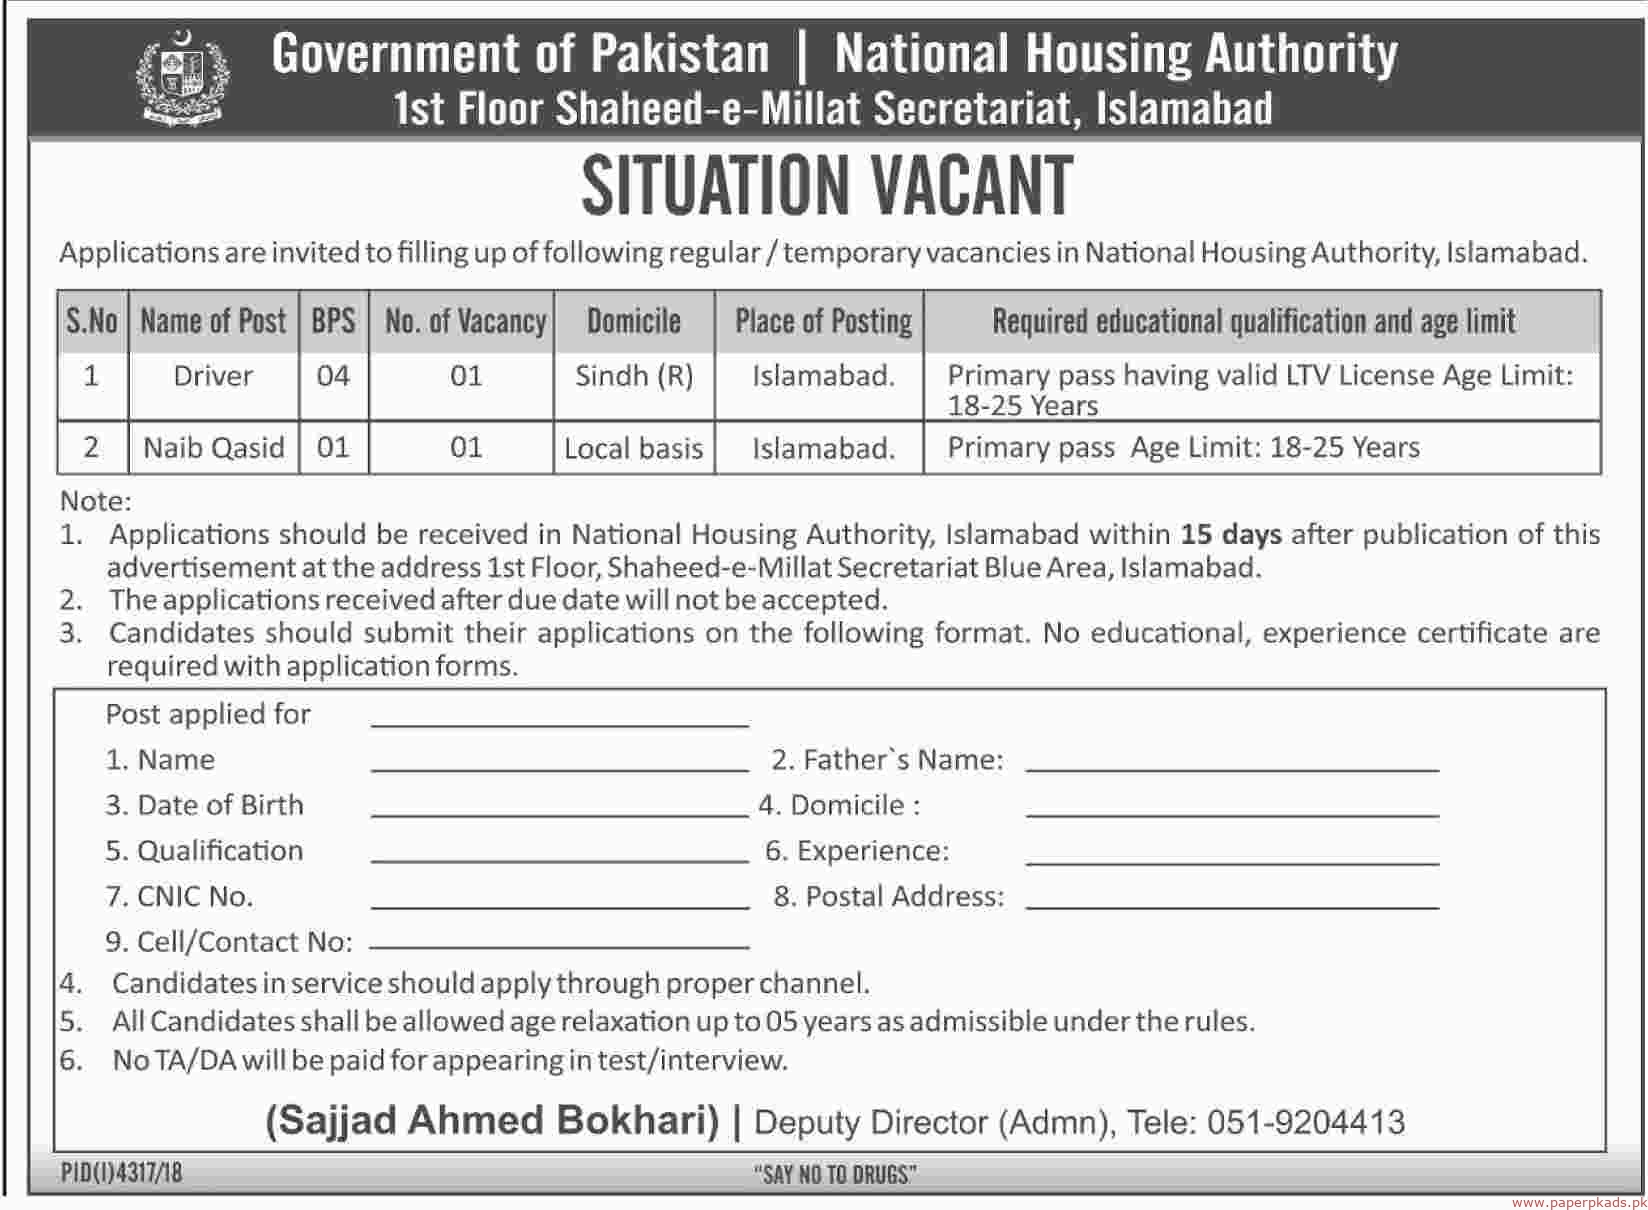 Government of Pakistan - National Housing Authority Jobs 2019 Latest